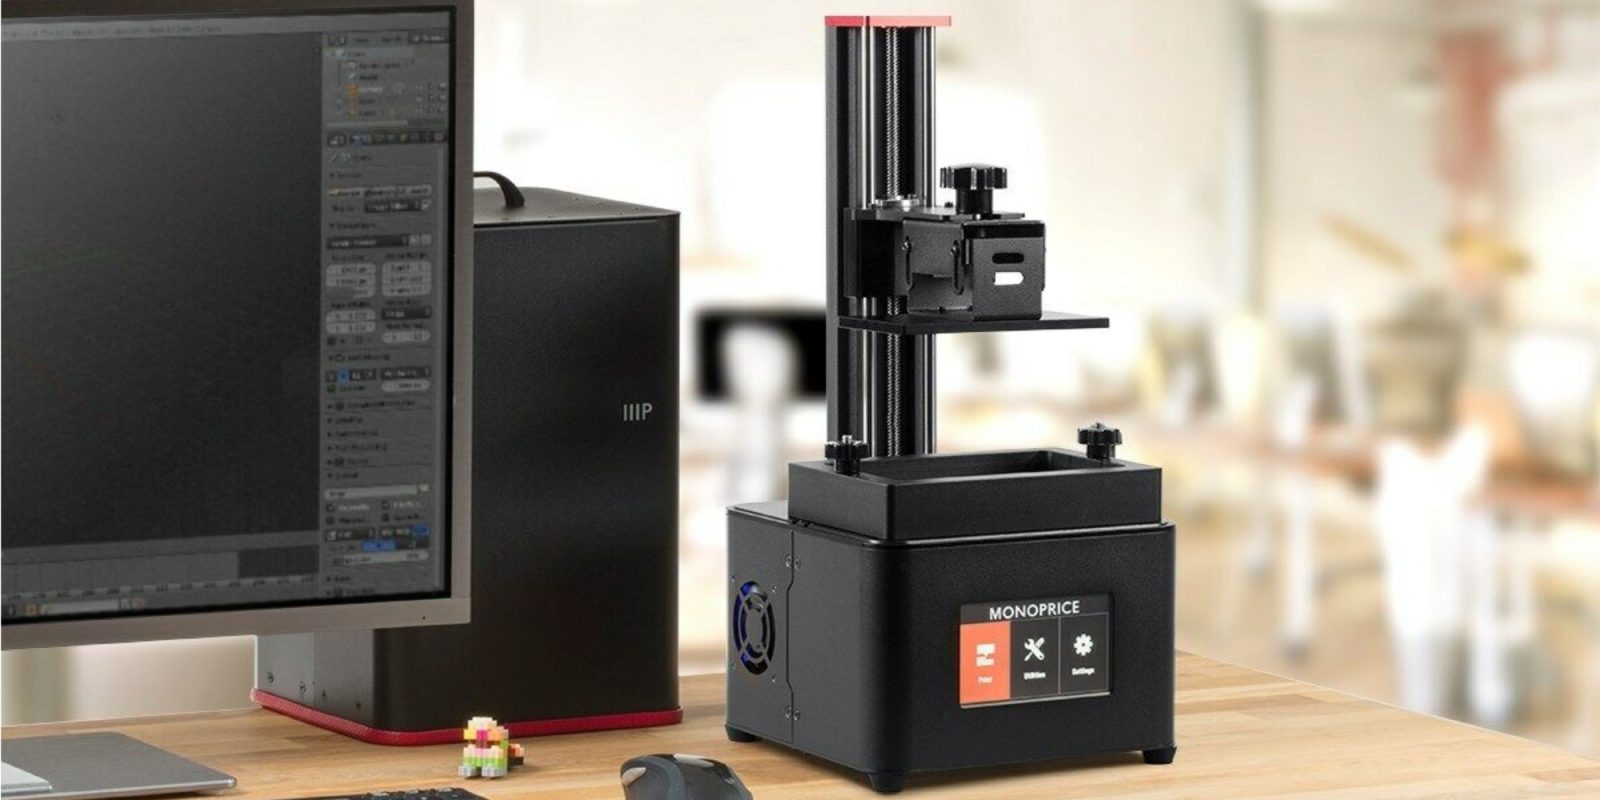 Take 42% off Monoprice's MP Mini Deluxe SLA 3D Printer at a new low of $288